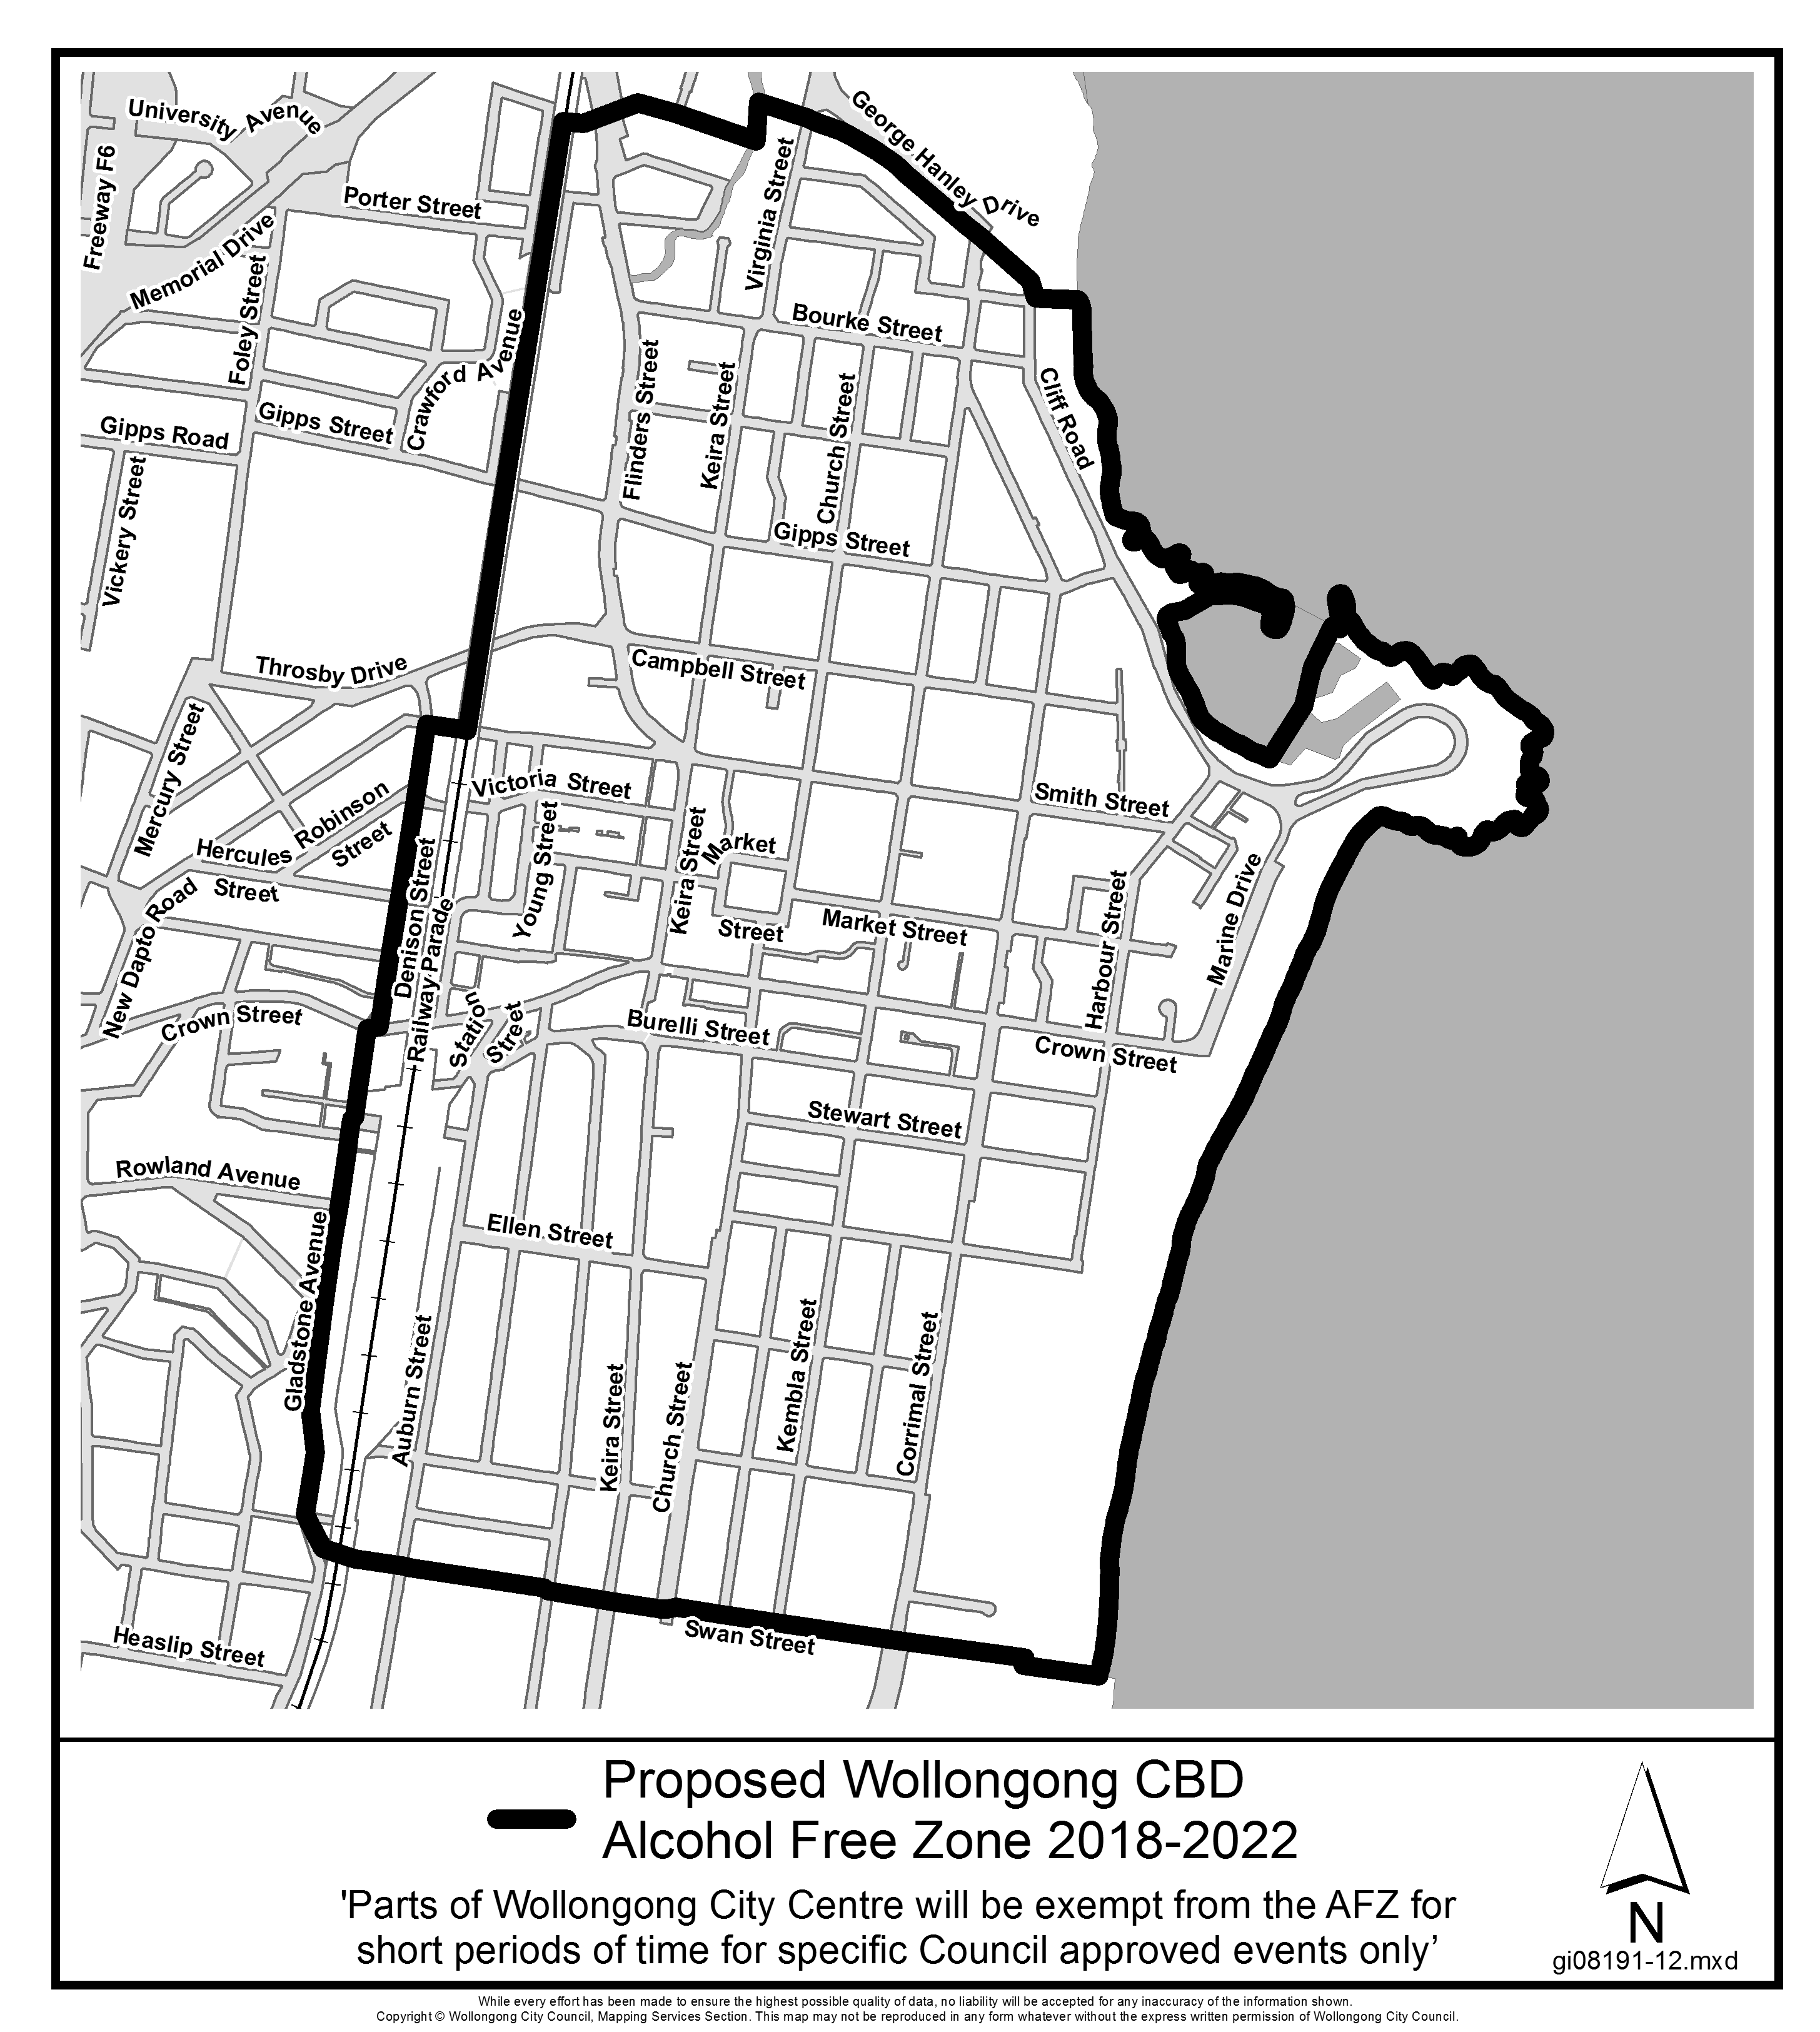 Proposed wollongong cbd alcohol free zone 2018 2022